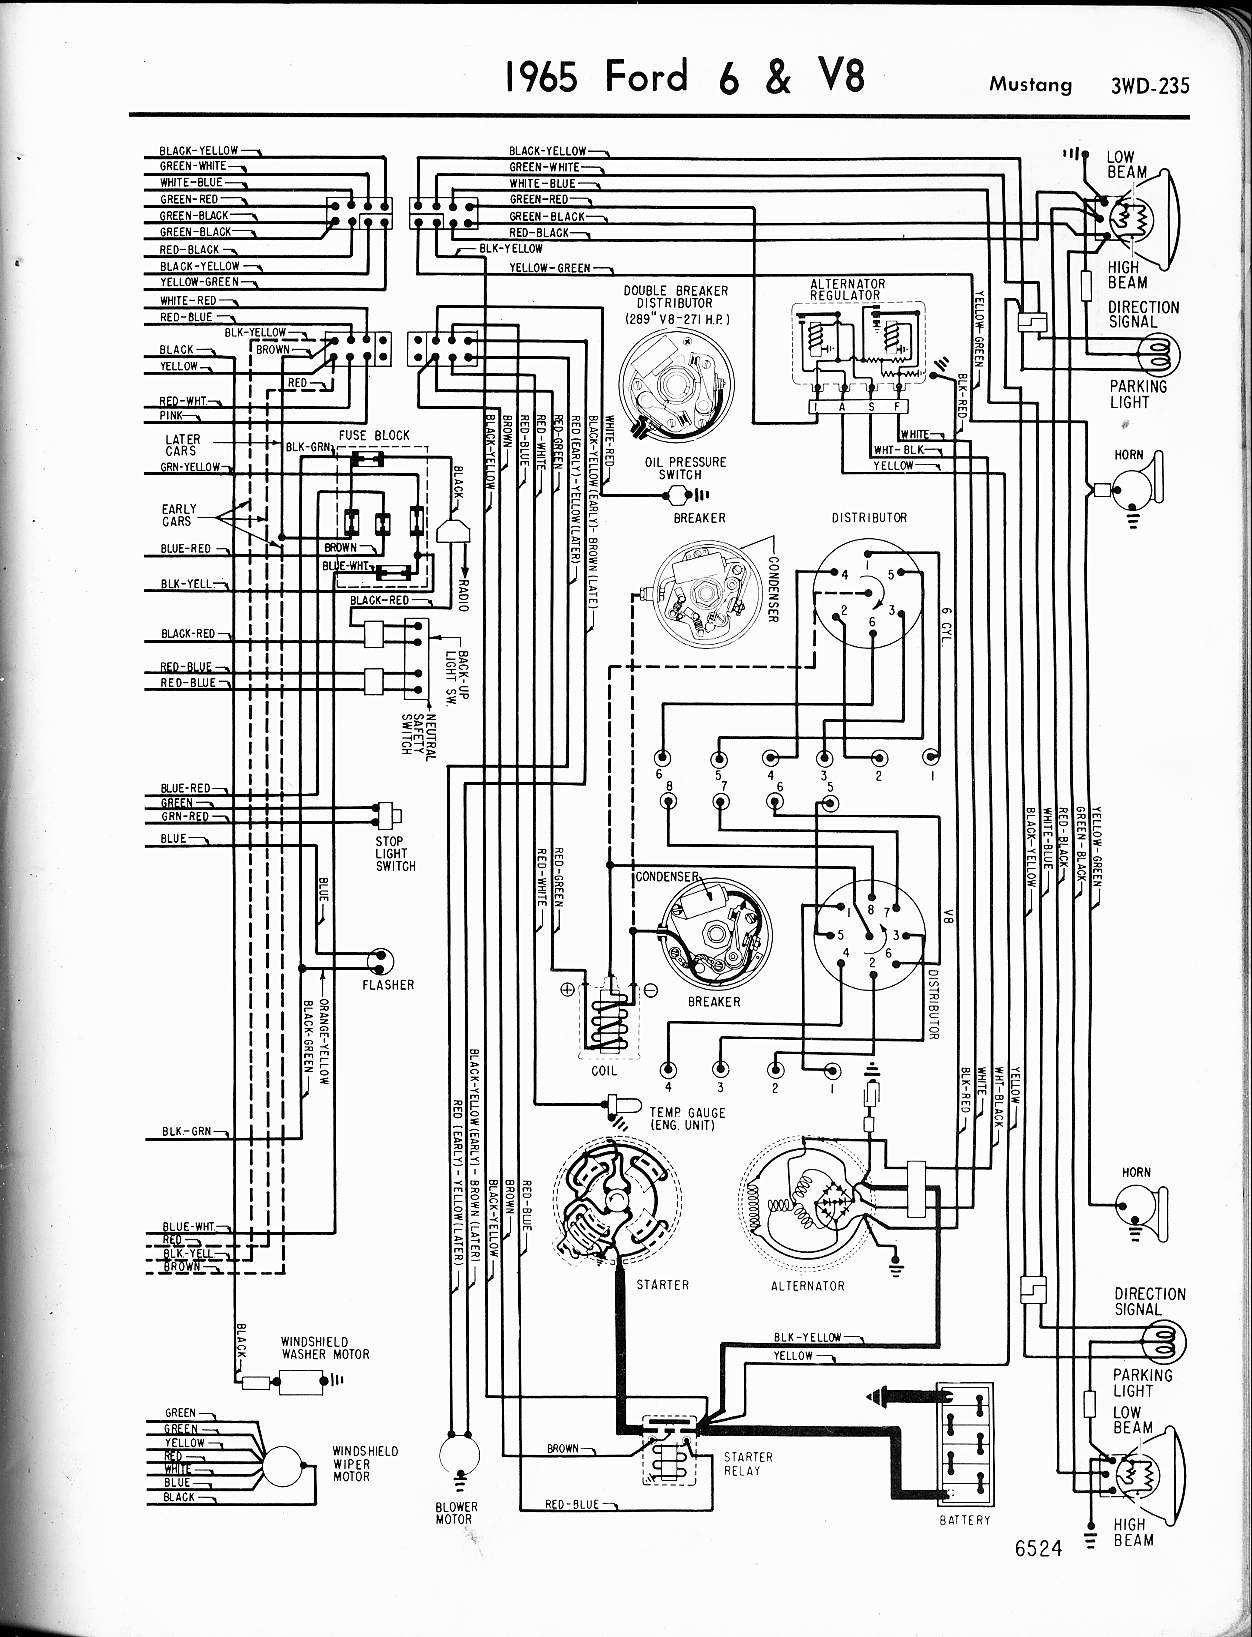 1965_mustang_wiring_2 ford diagrams Terminator Time Loop Diagram at sewacar.co